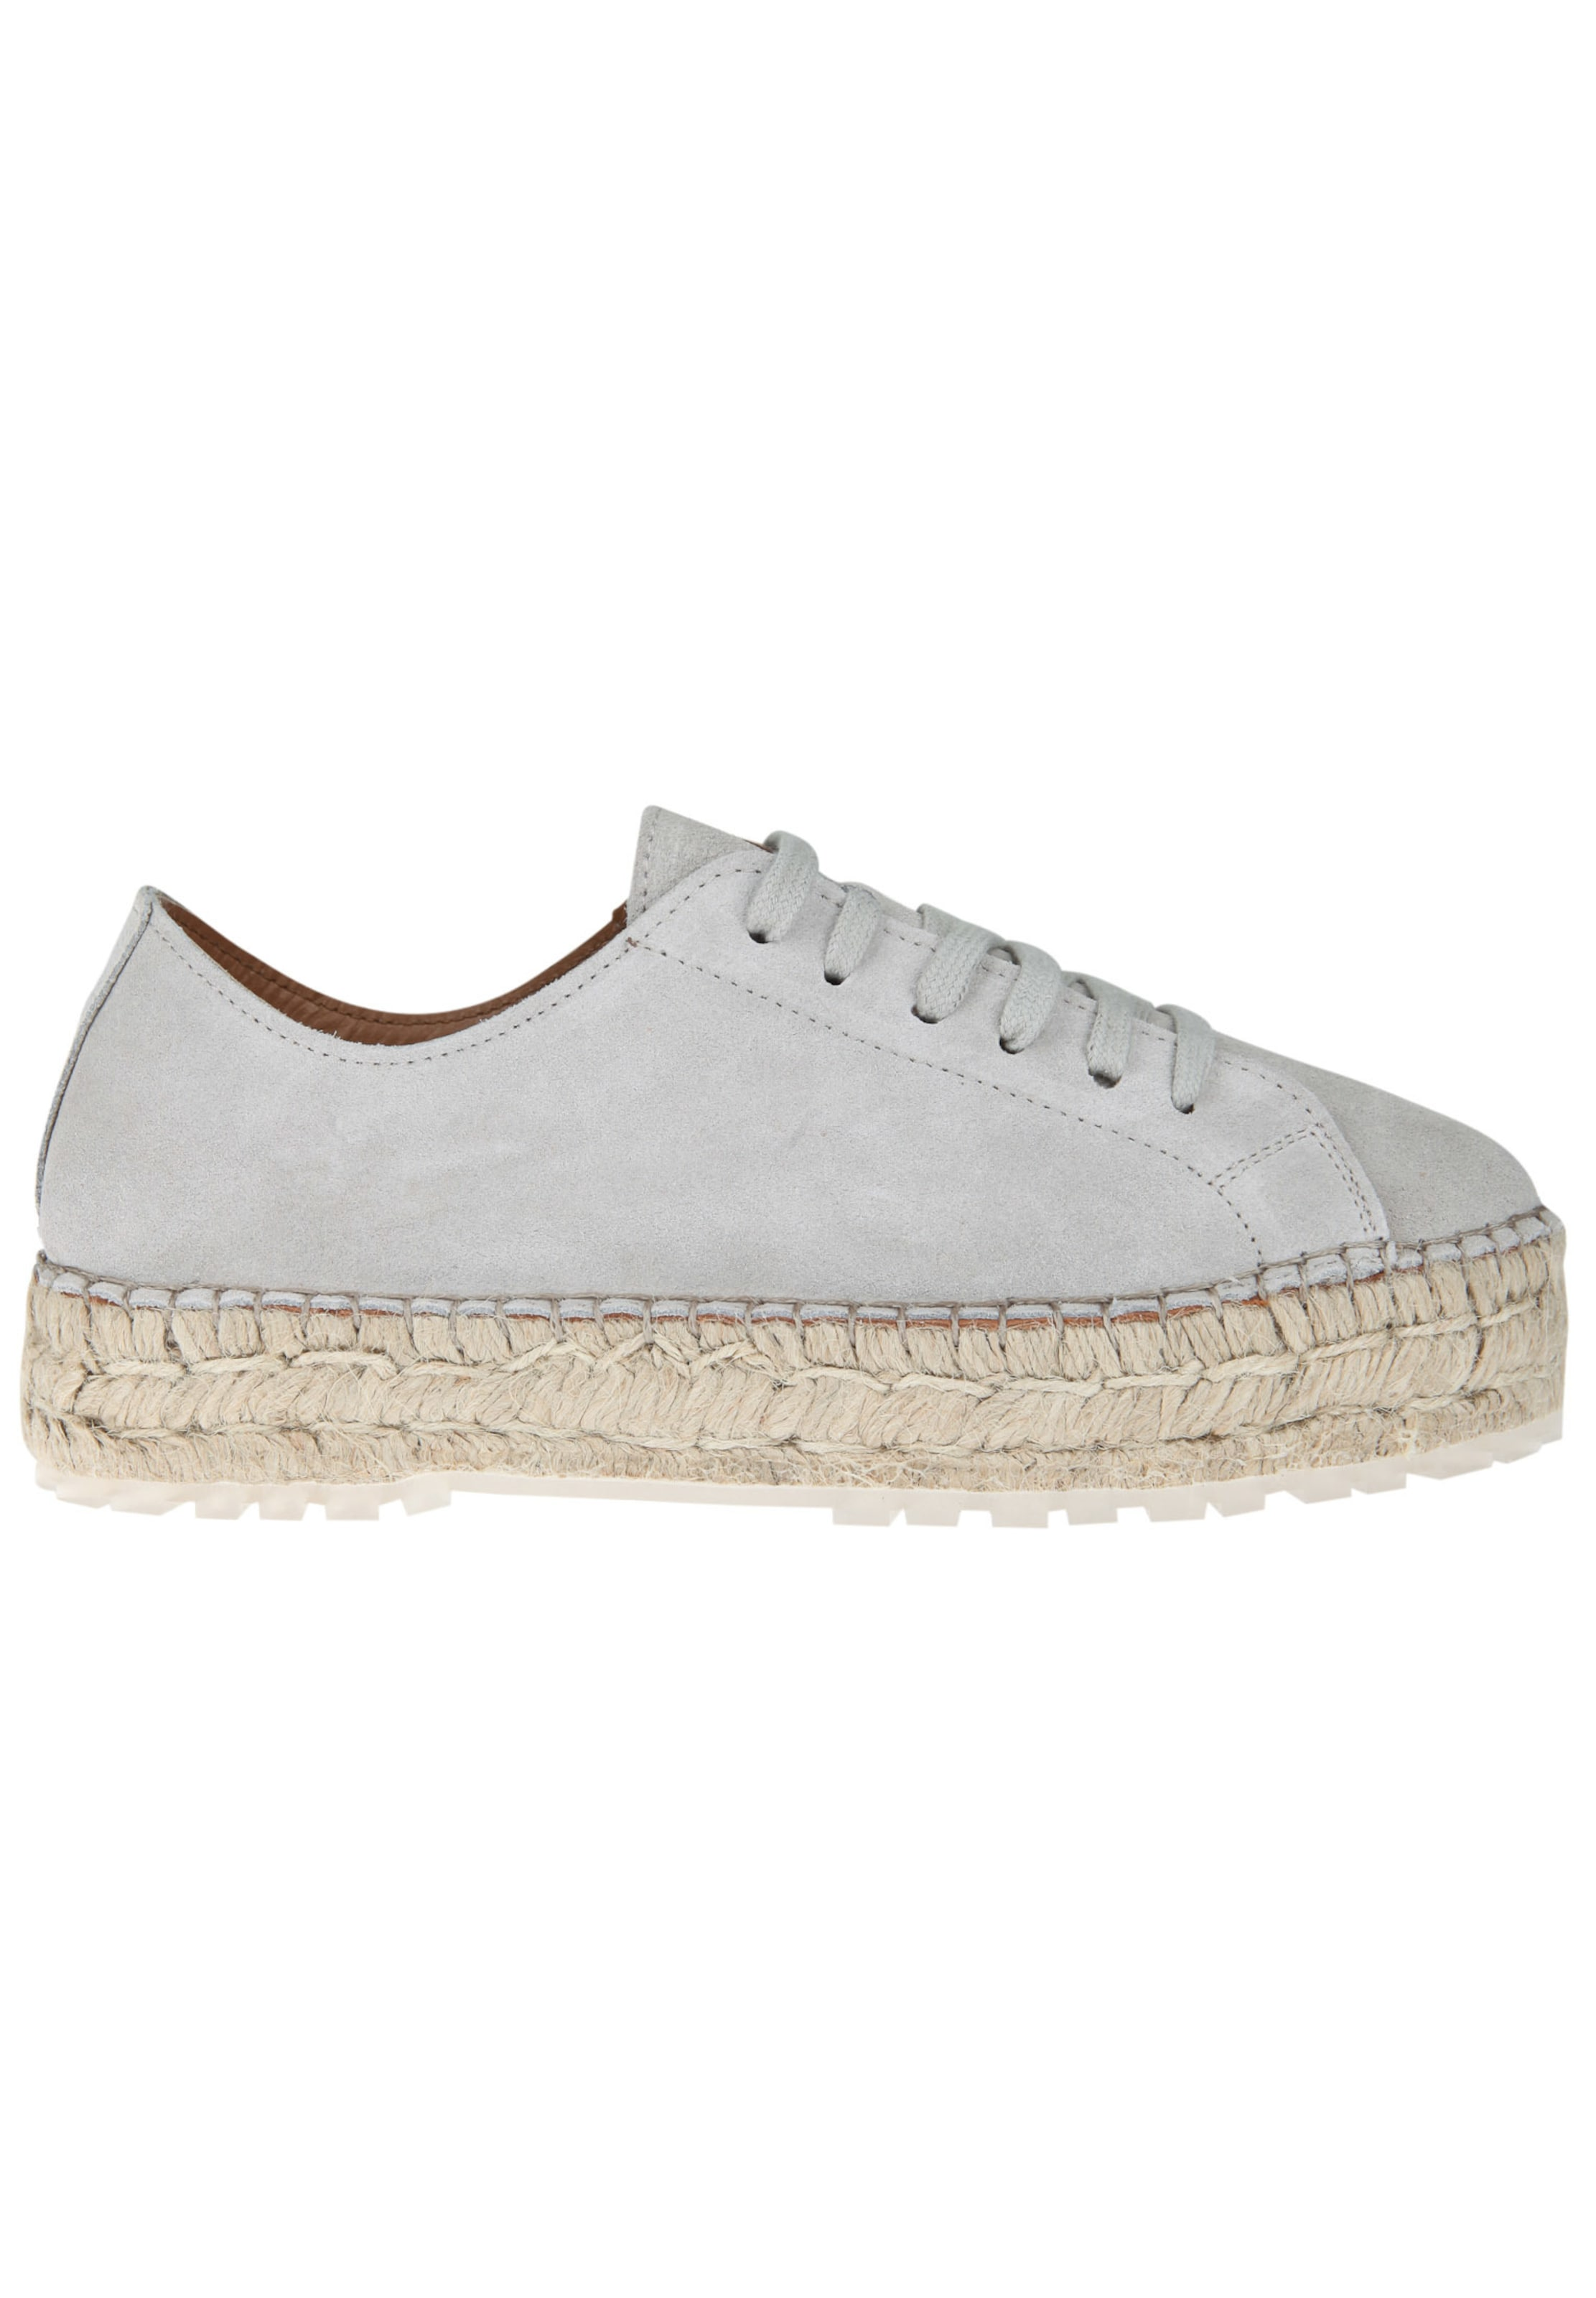 SHABBIES AMSTERDAM Espadrille-Sneaker LACE-UP SUEDE Auslass Empfehlen P8yPM6